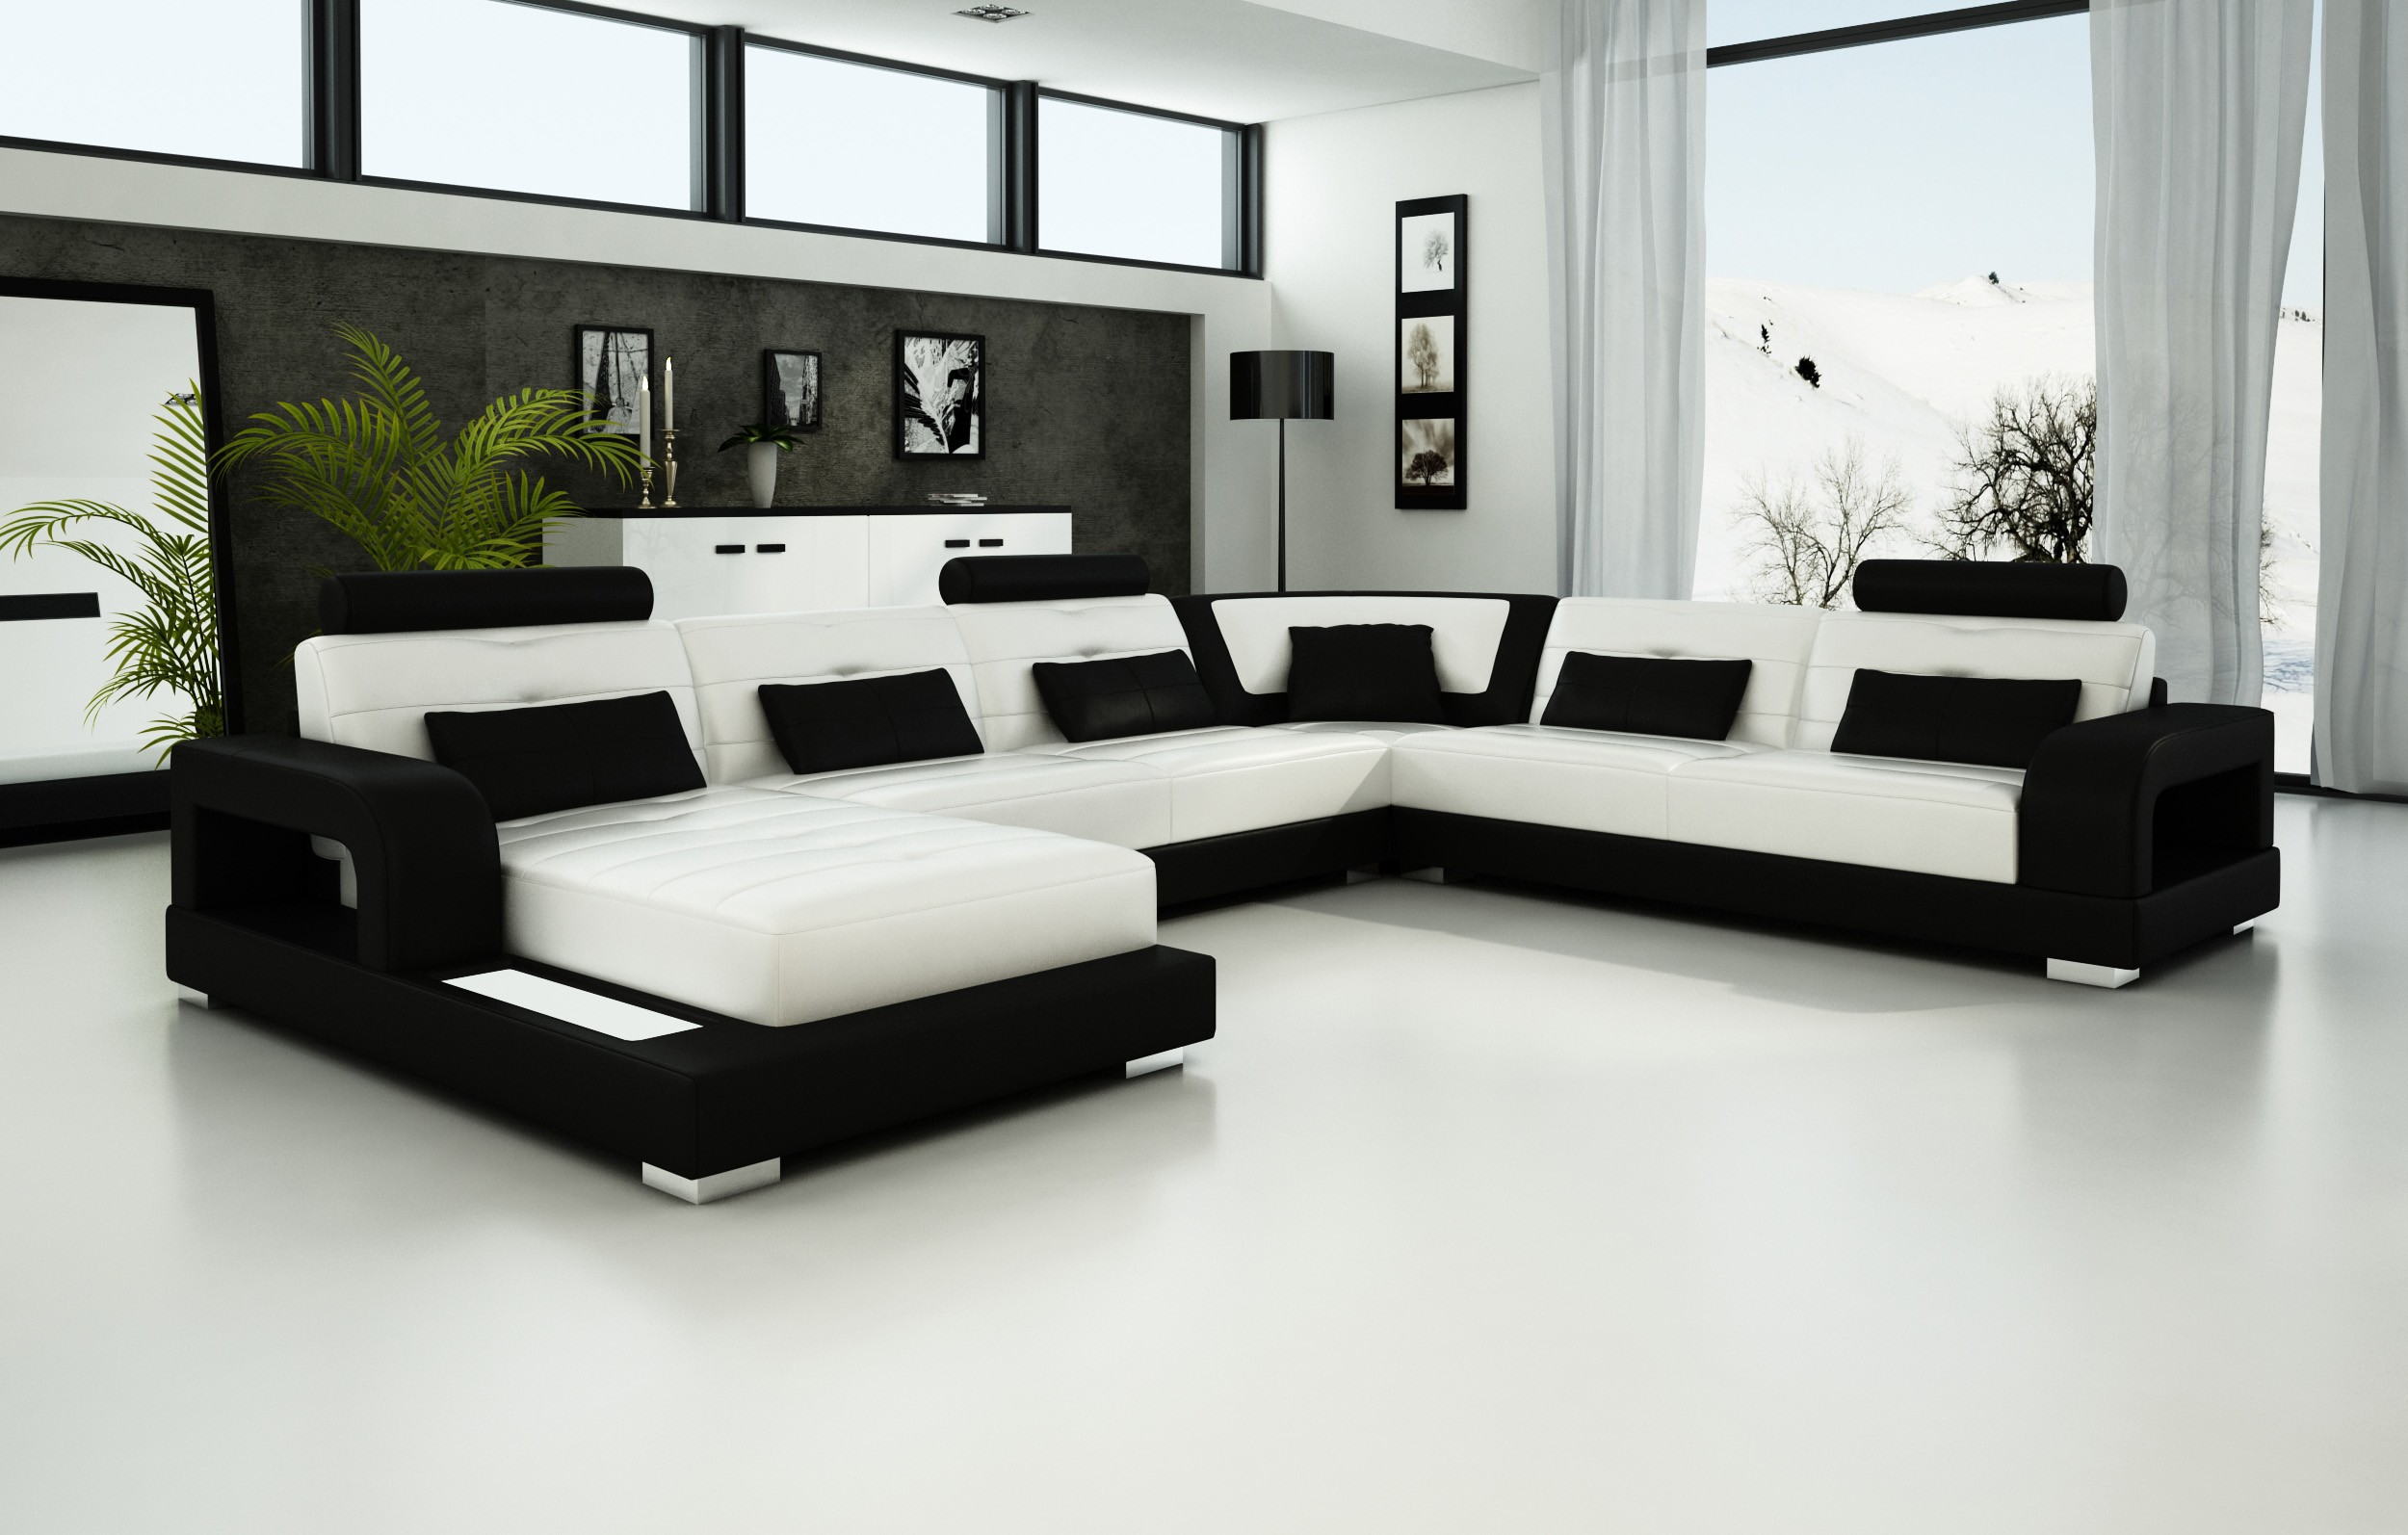 Black Leather Couches. Pesaro White Black Leather Sofa Black Couches